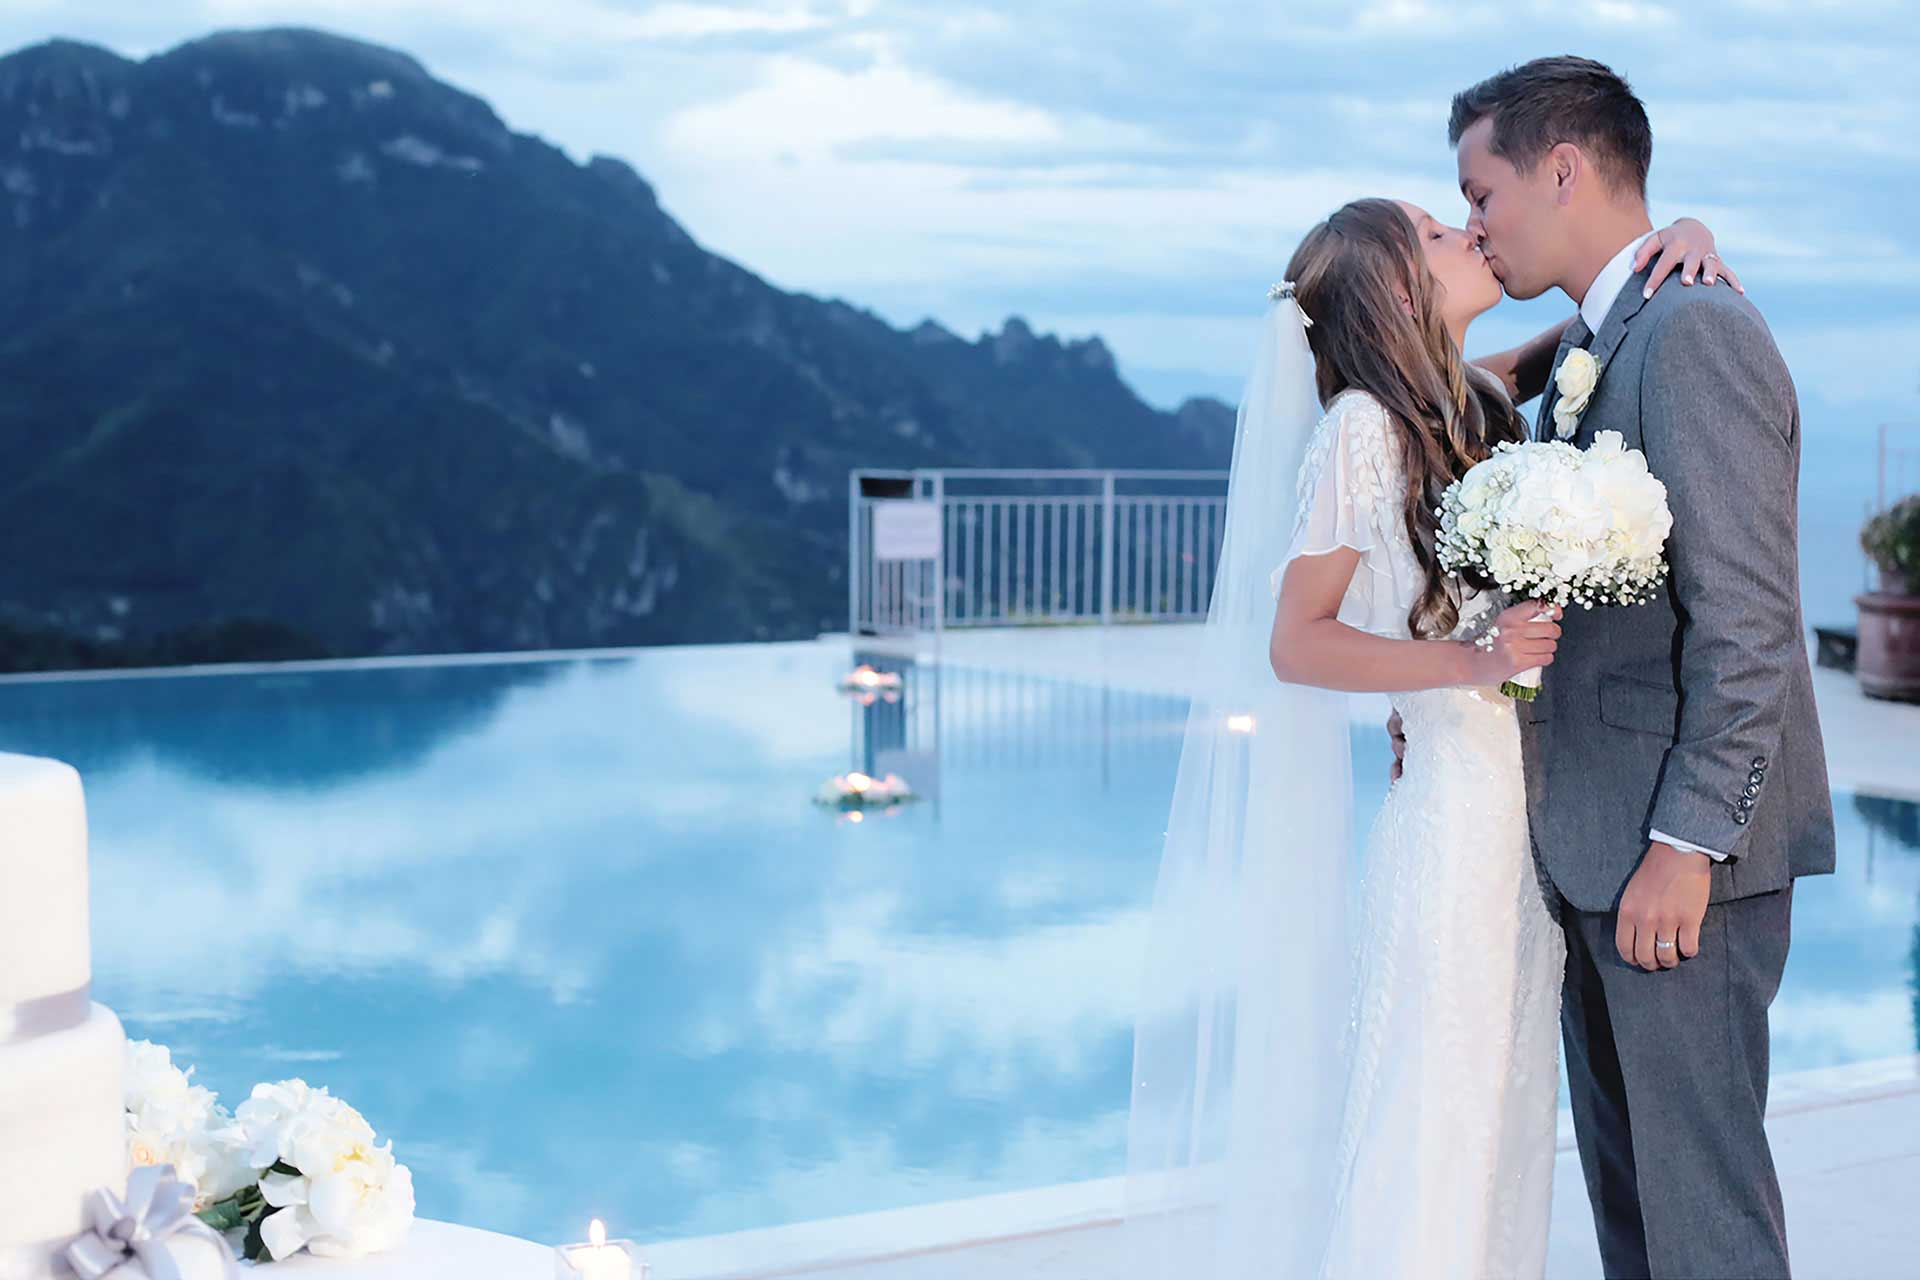 Destination Civil Symbolic Protestant Vows Blessing Jewish Wedding Photographer Hotel Caruso in Ravello Amalfi Coast Italy Claudia Francese Photography